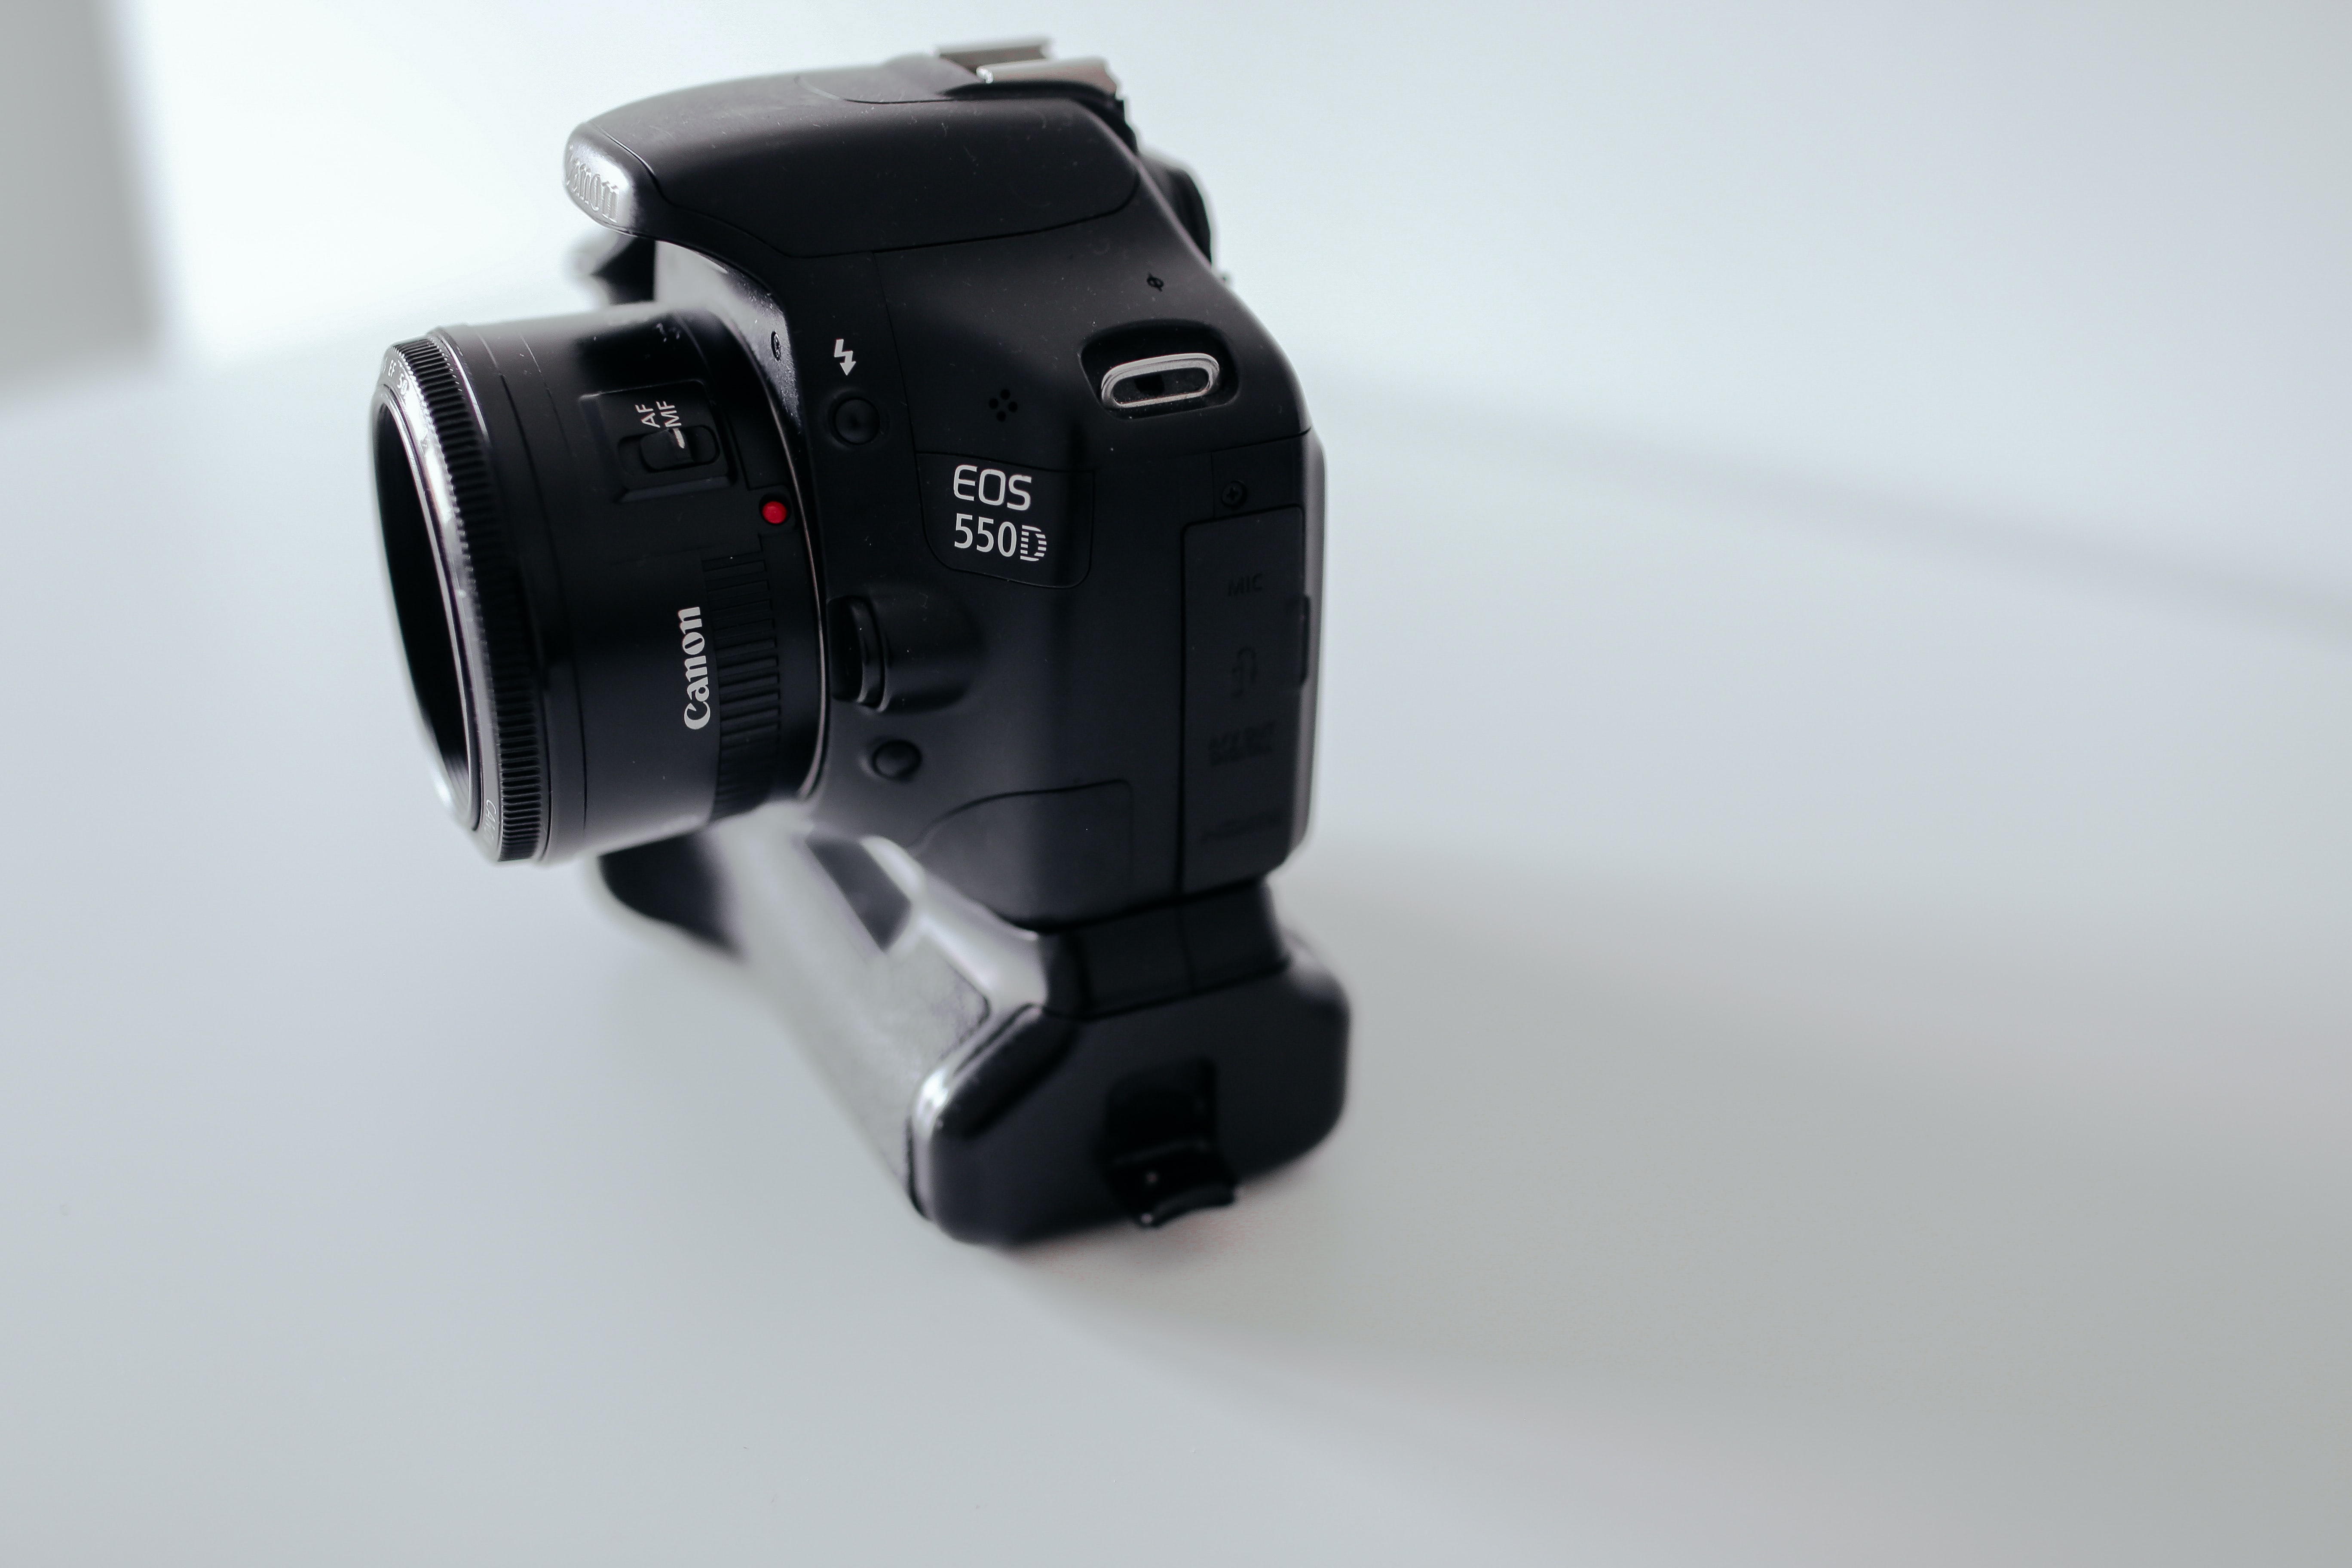 Canon EOS 550D Camera with lens and a battery pack on a white surface